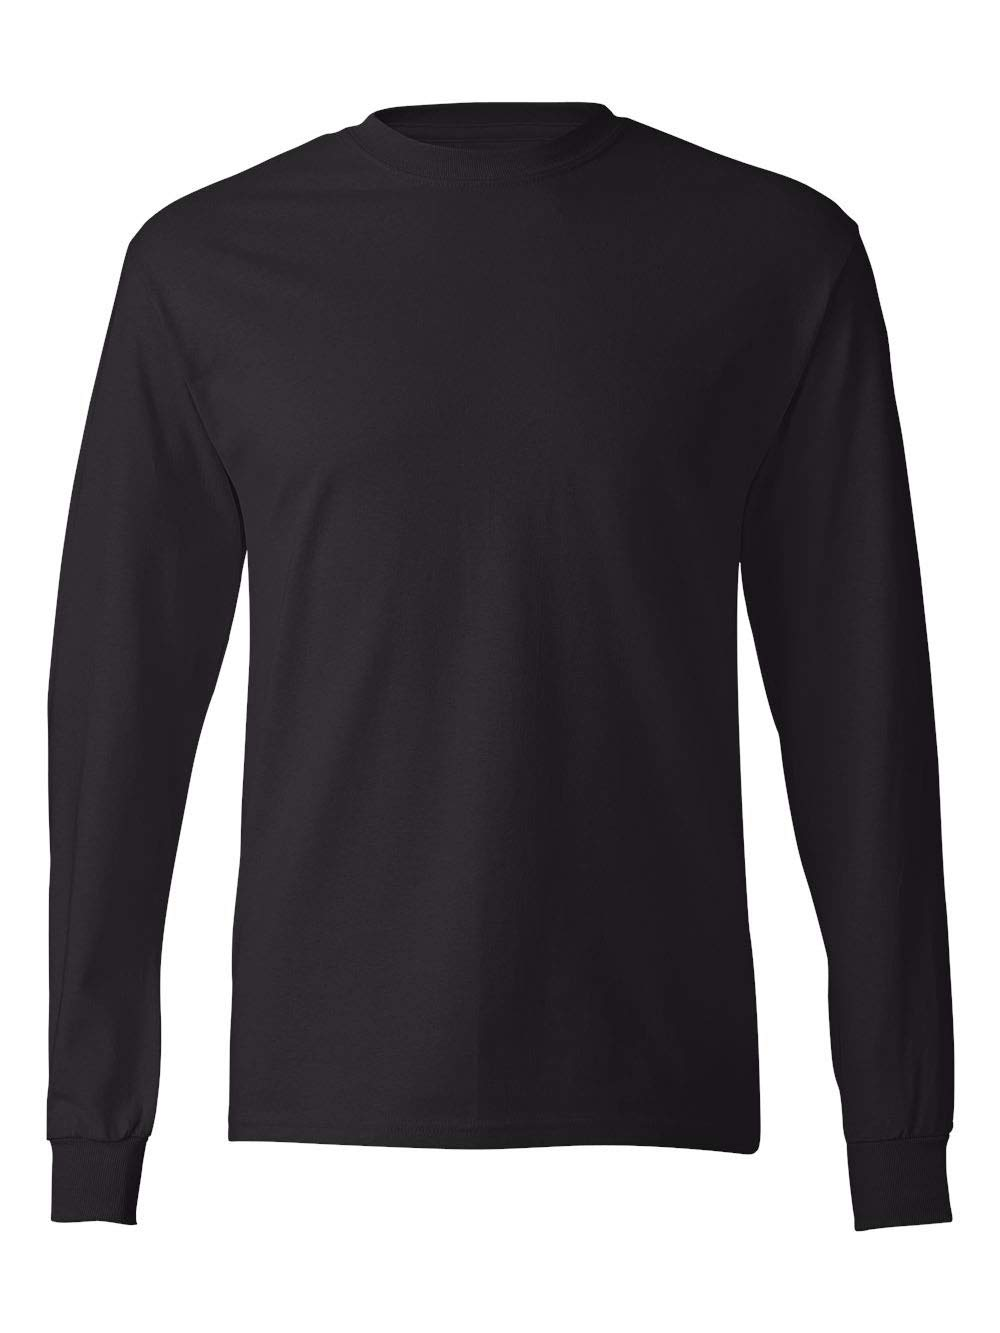 Hanes TAGLESS 6.1 Long Sleeve T-Shirt (Black, XXL)